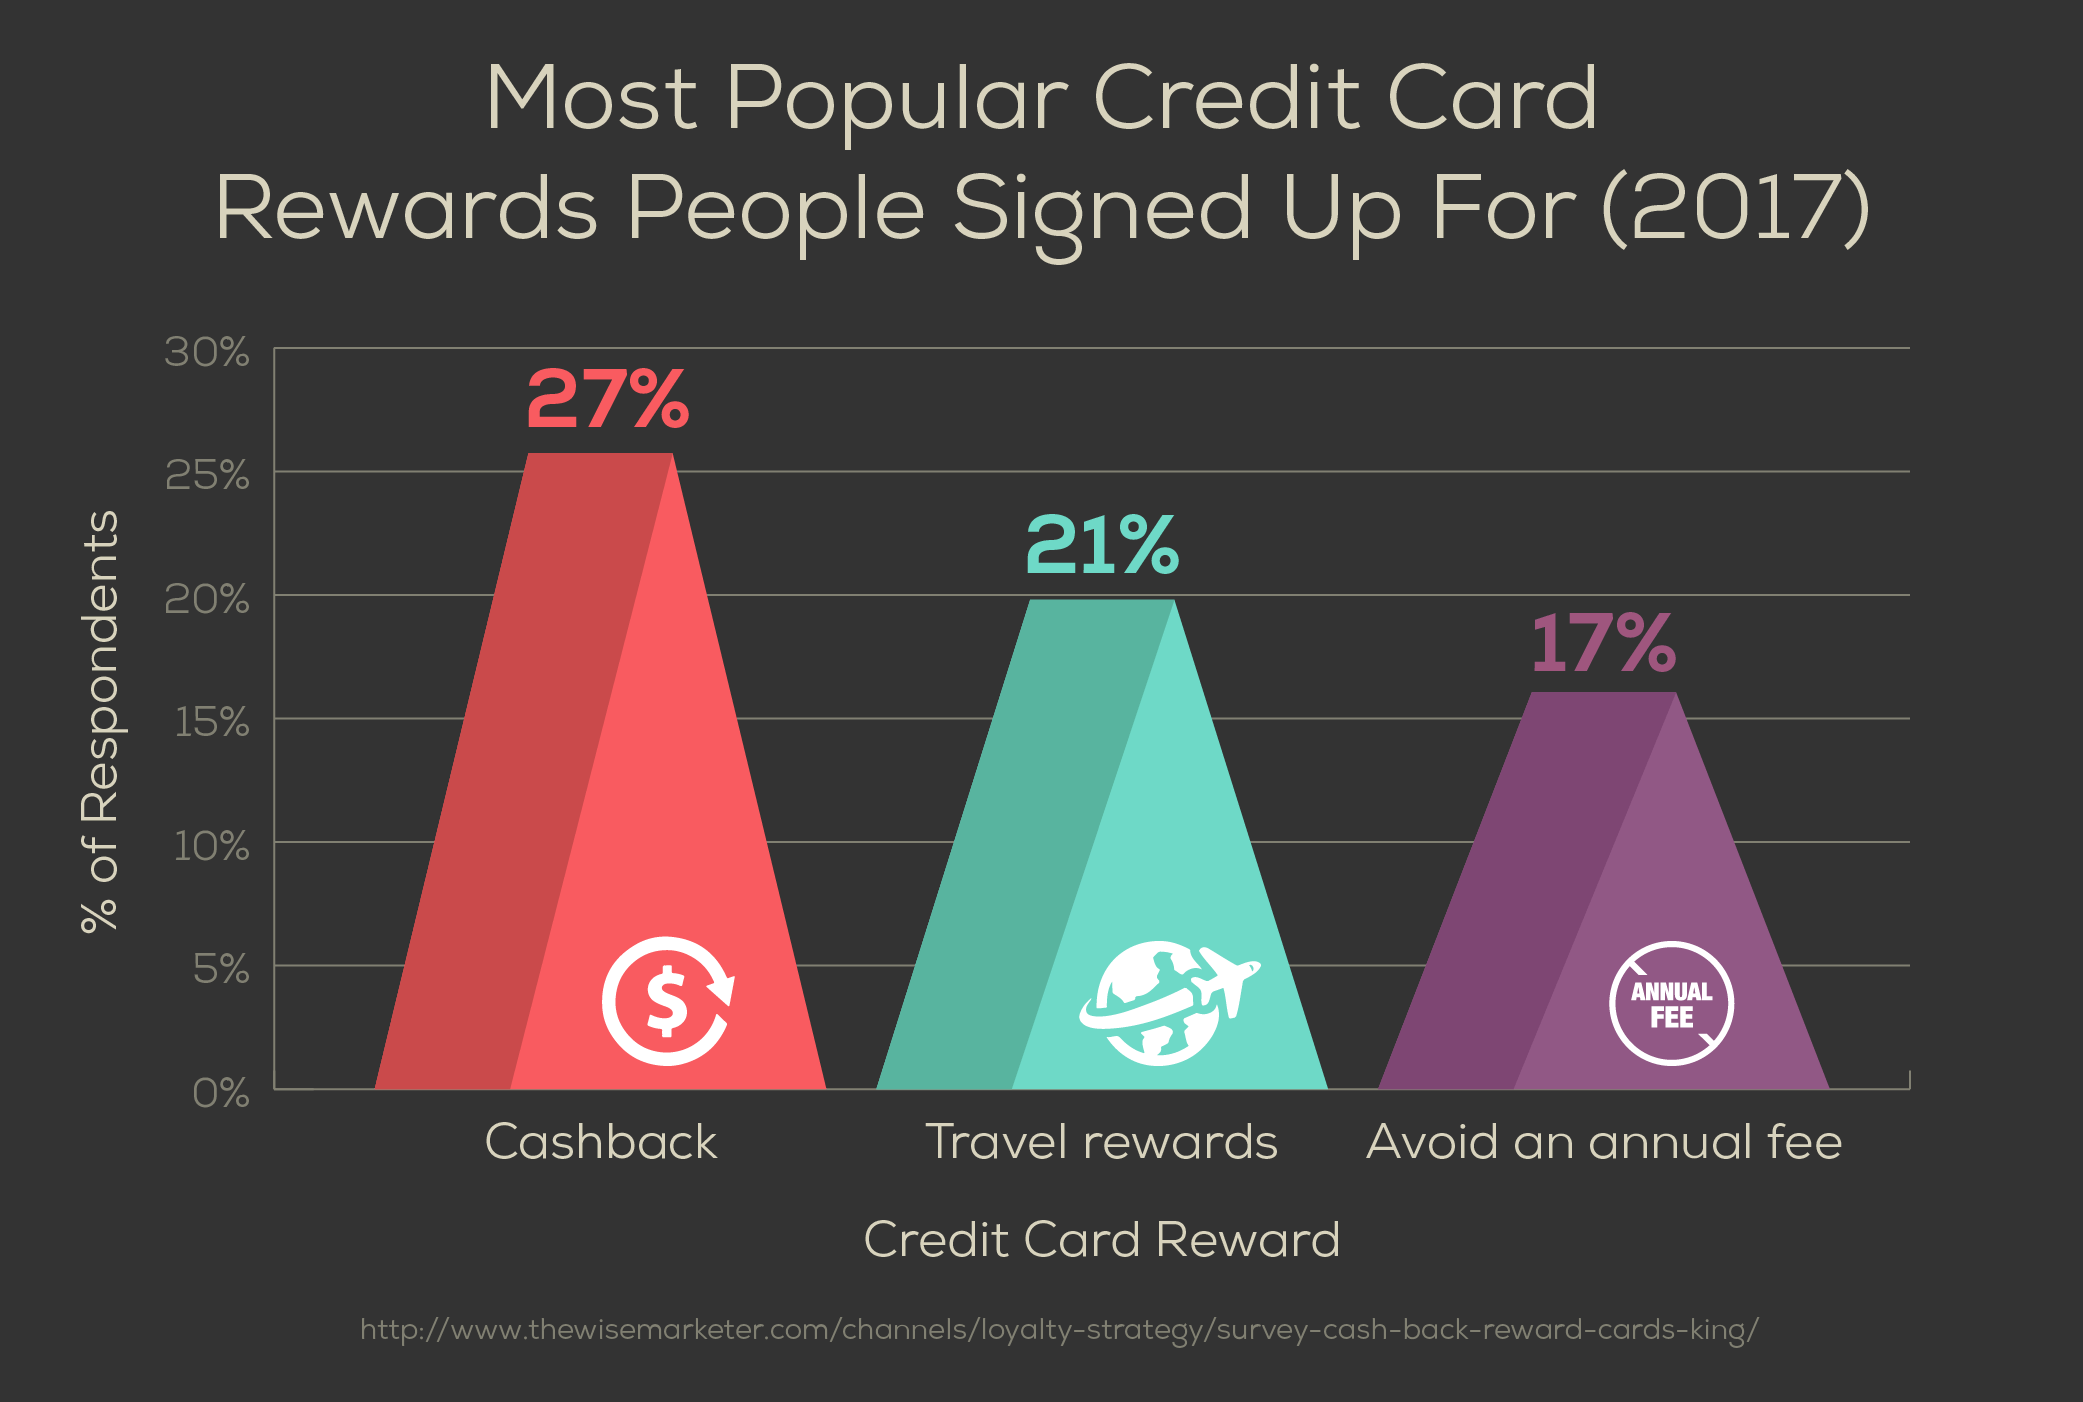 Most Popular Credit Card Rewards People Signed Up For (2017)